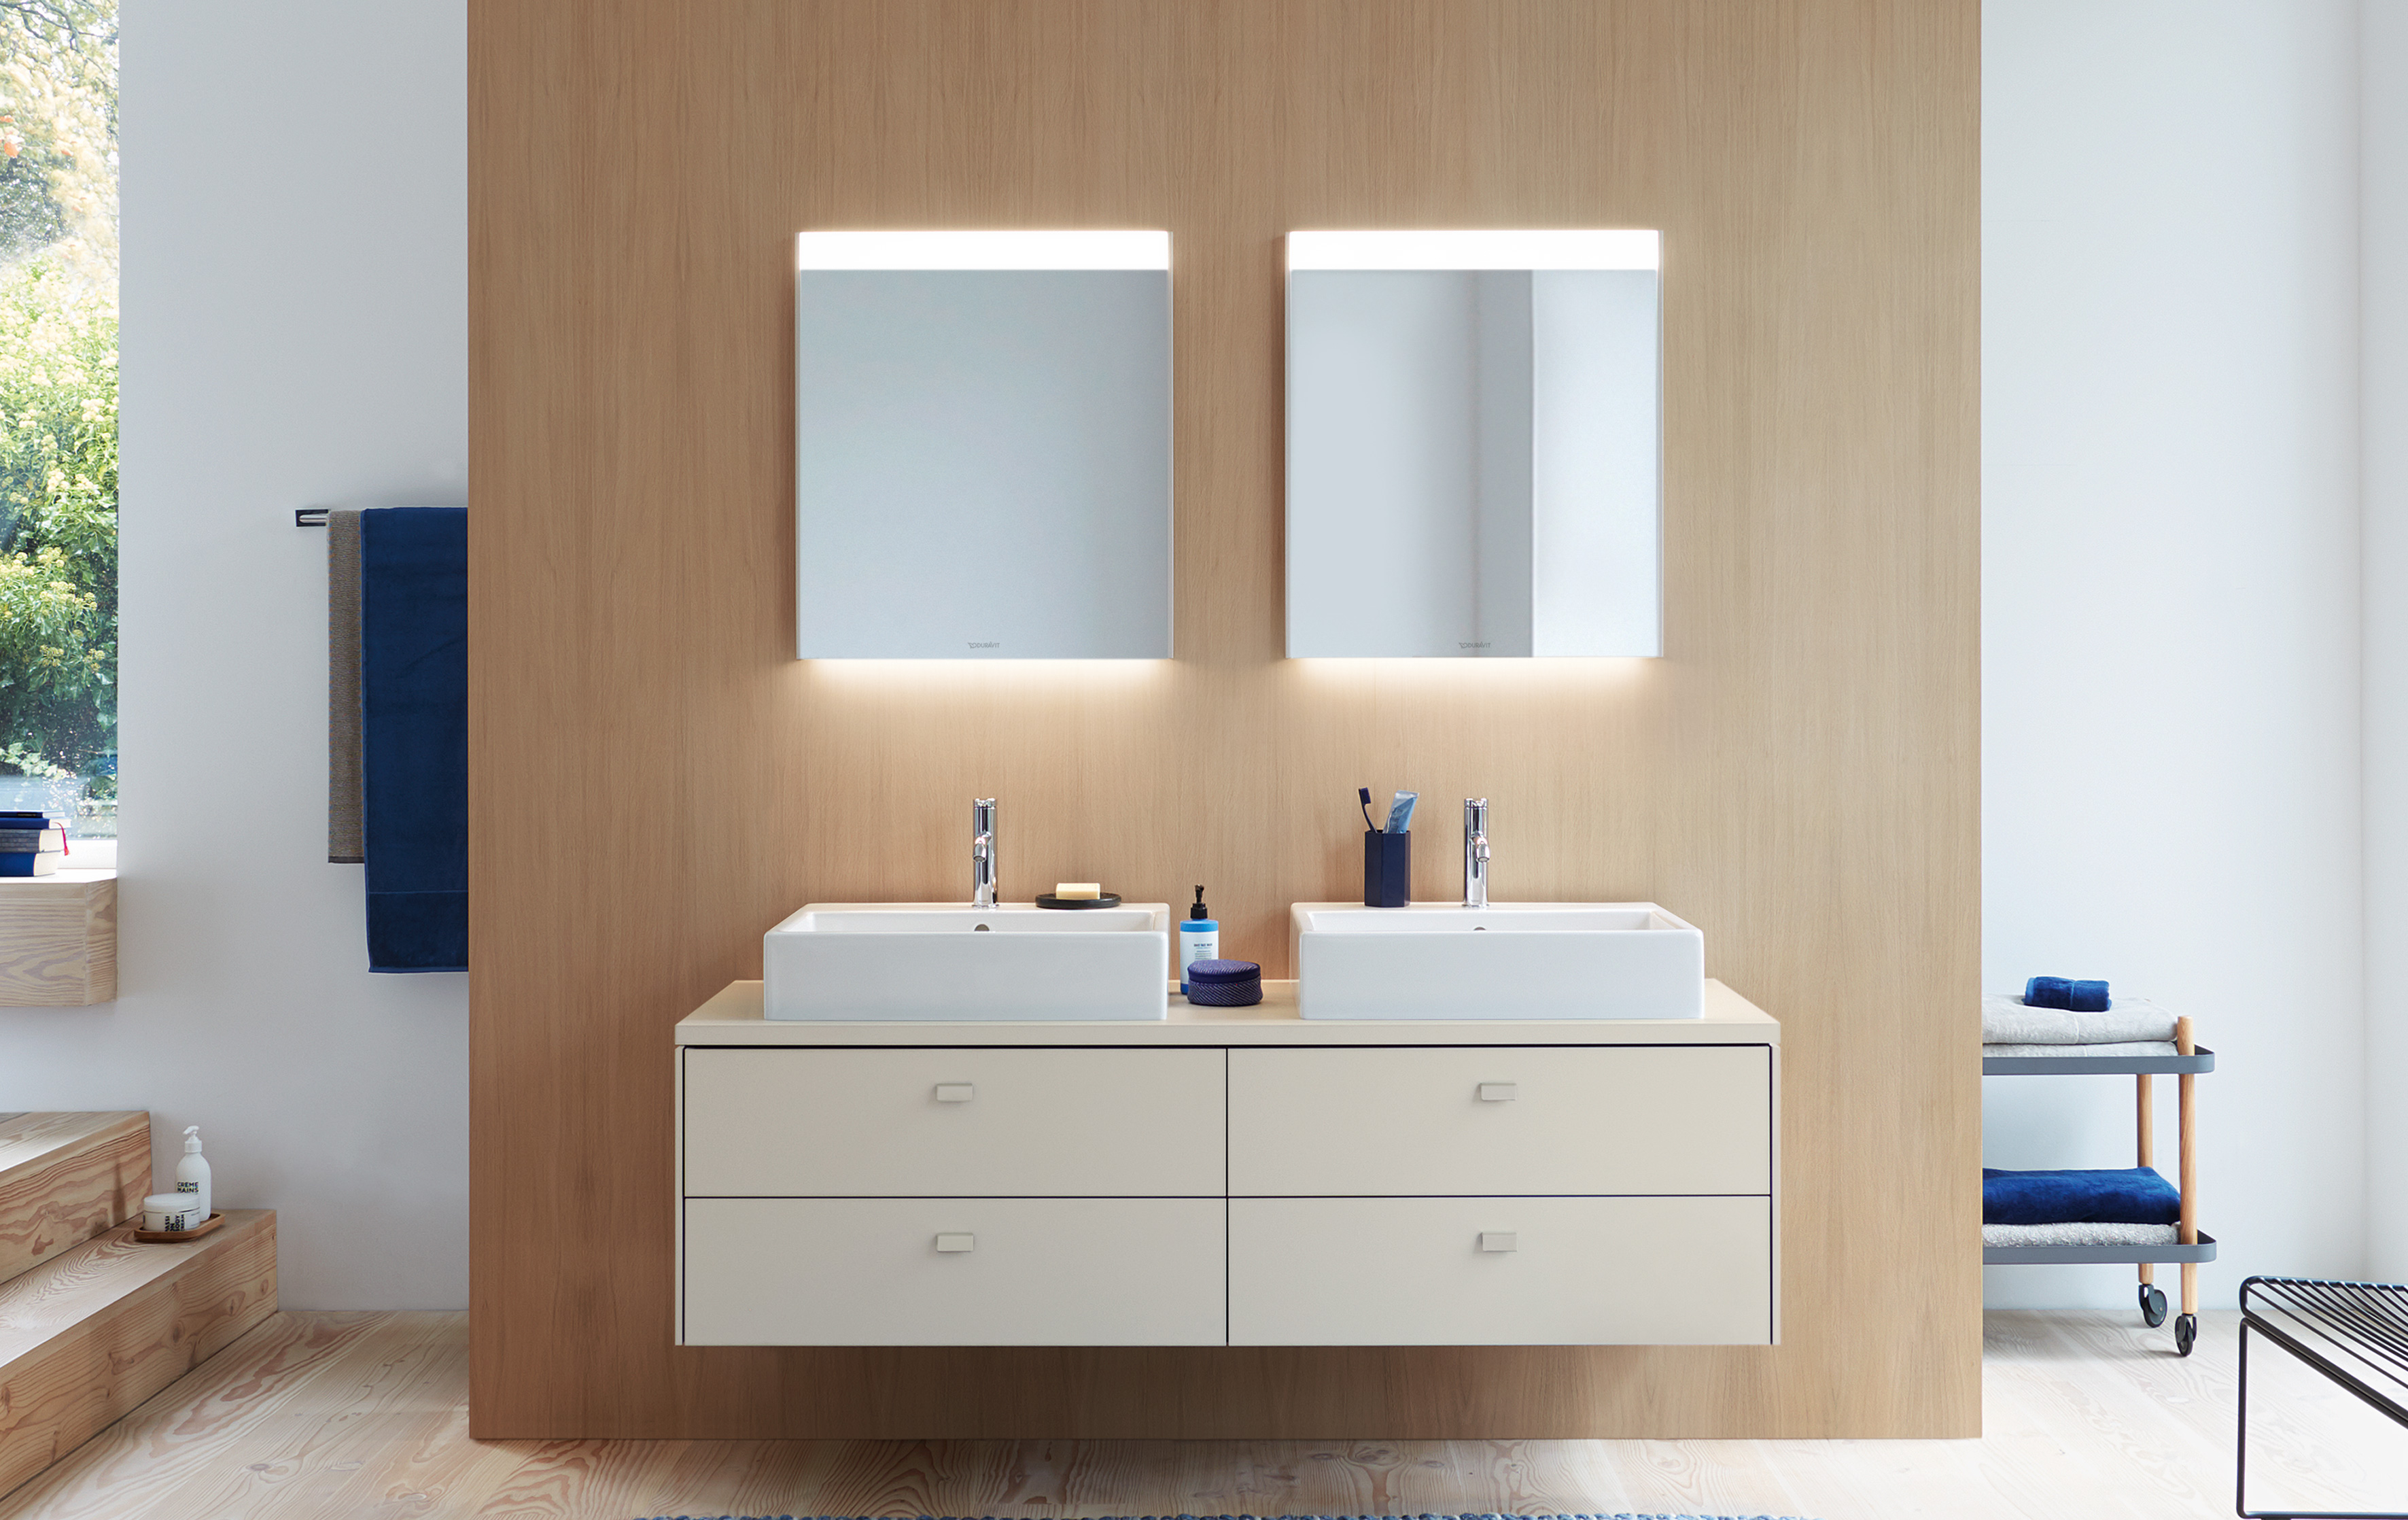 For Greater Individuality In The Bathroom.